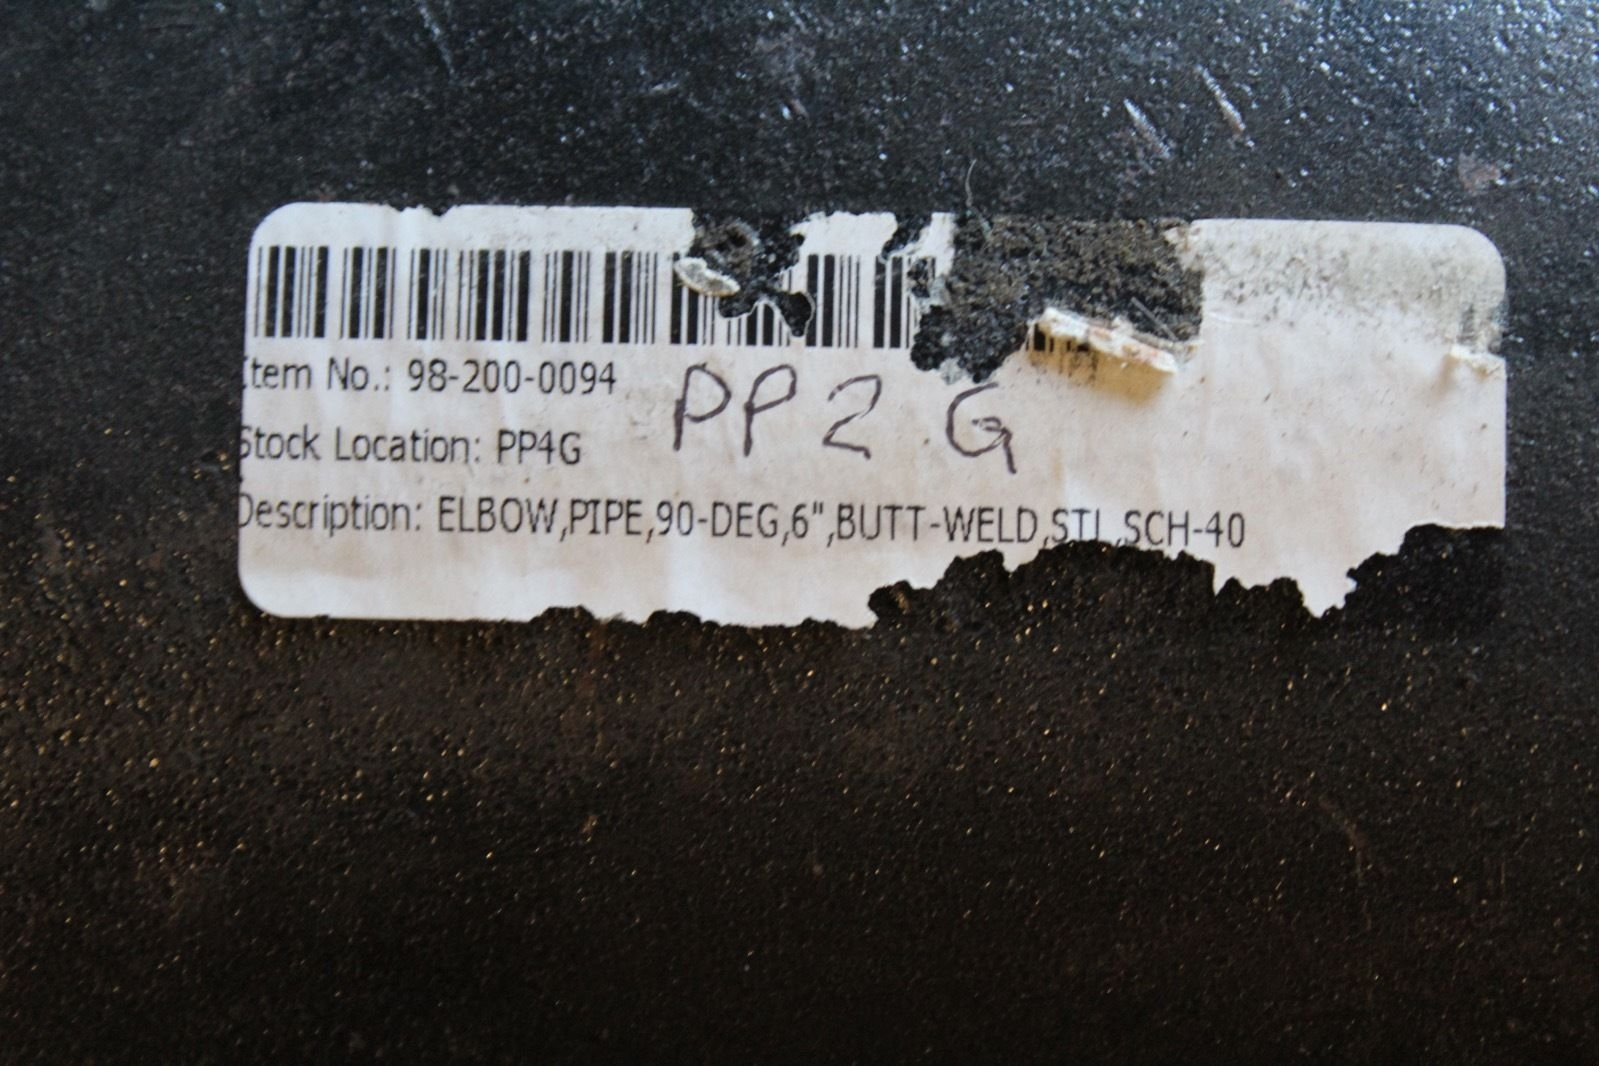 Elbow pipe 90 Deg 6� Butt-weld SCH-40 (P23) 2